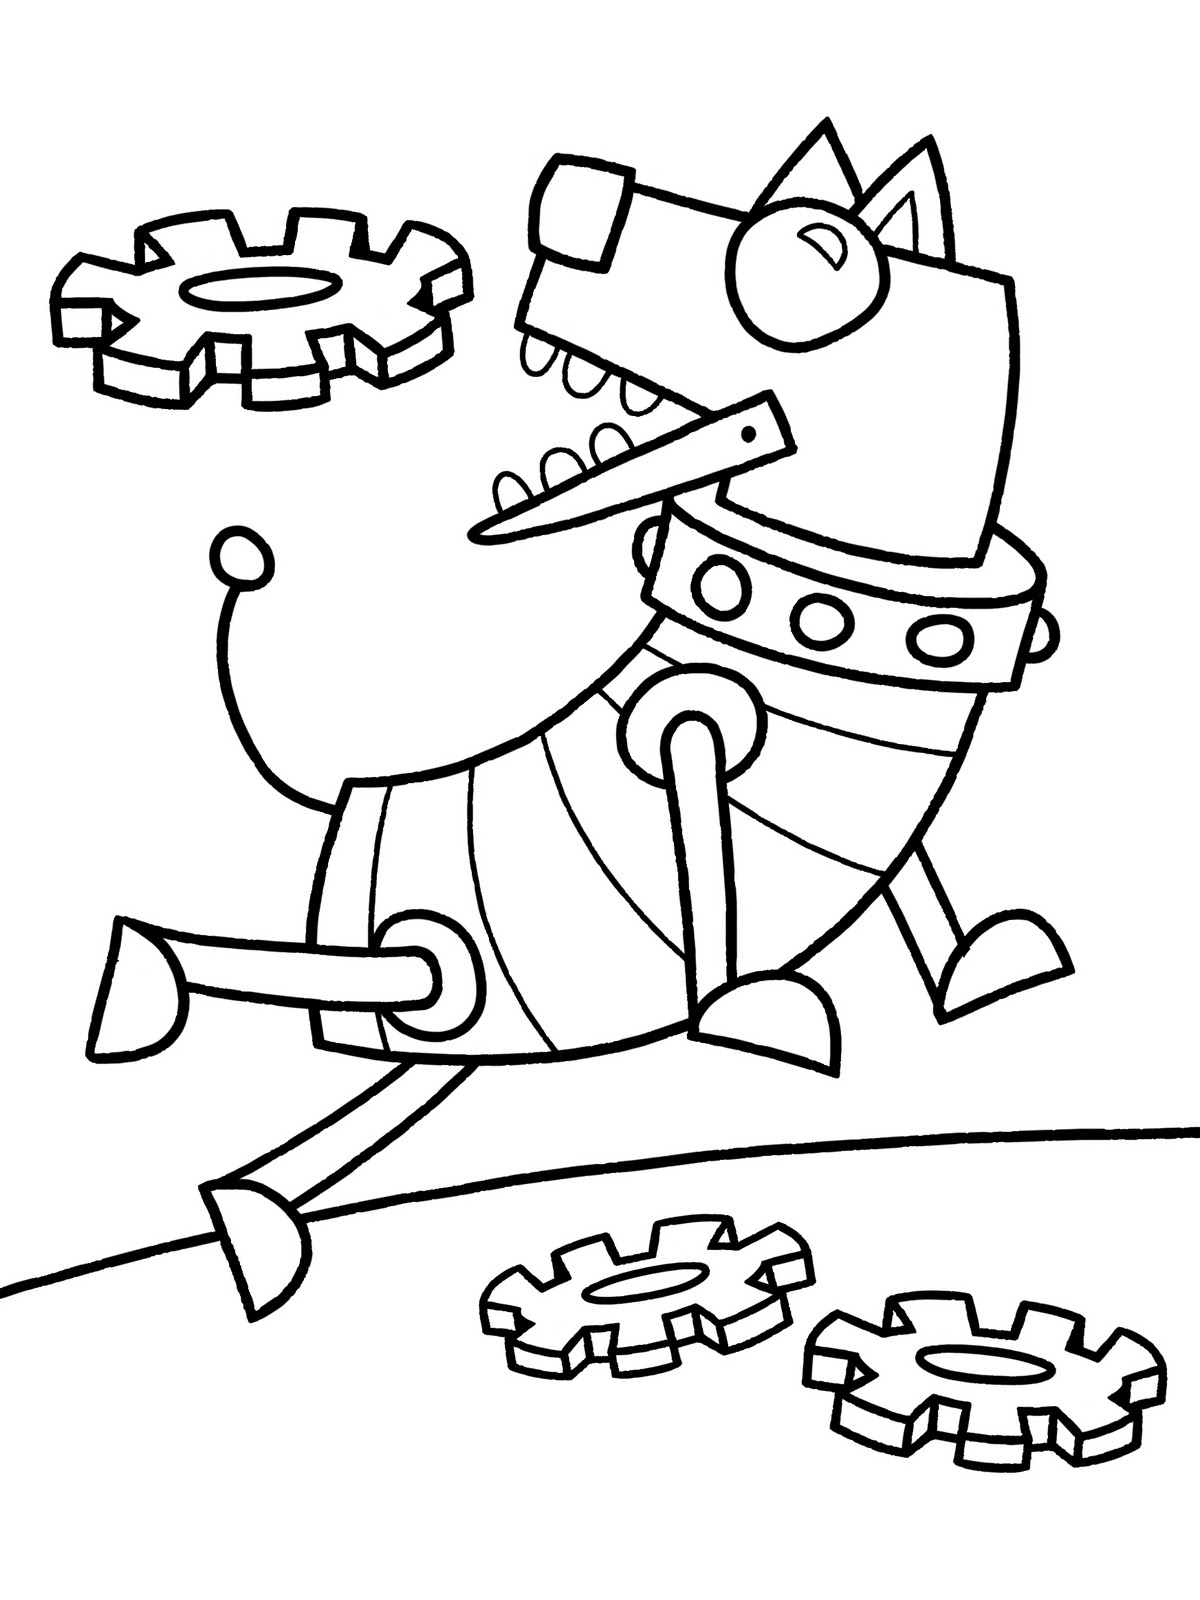 coloring sheet robot coloring pages free easy to print robot coloring pages tulamama robot pages coloring sheet coloring